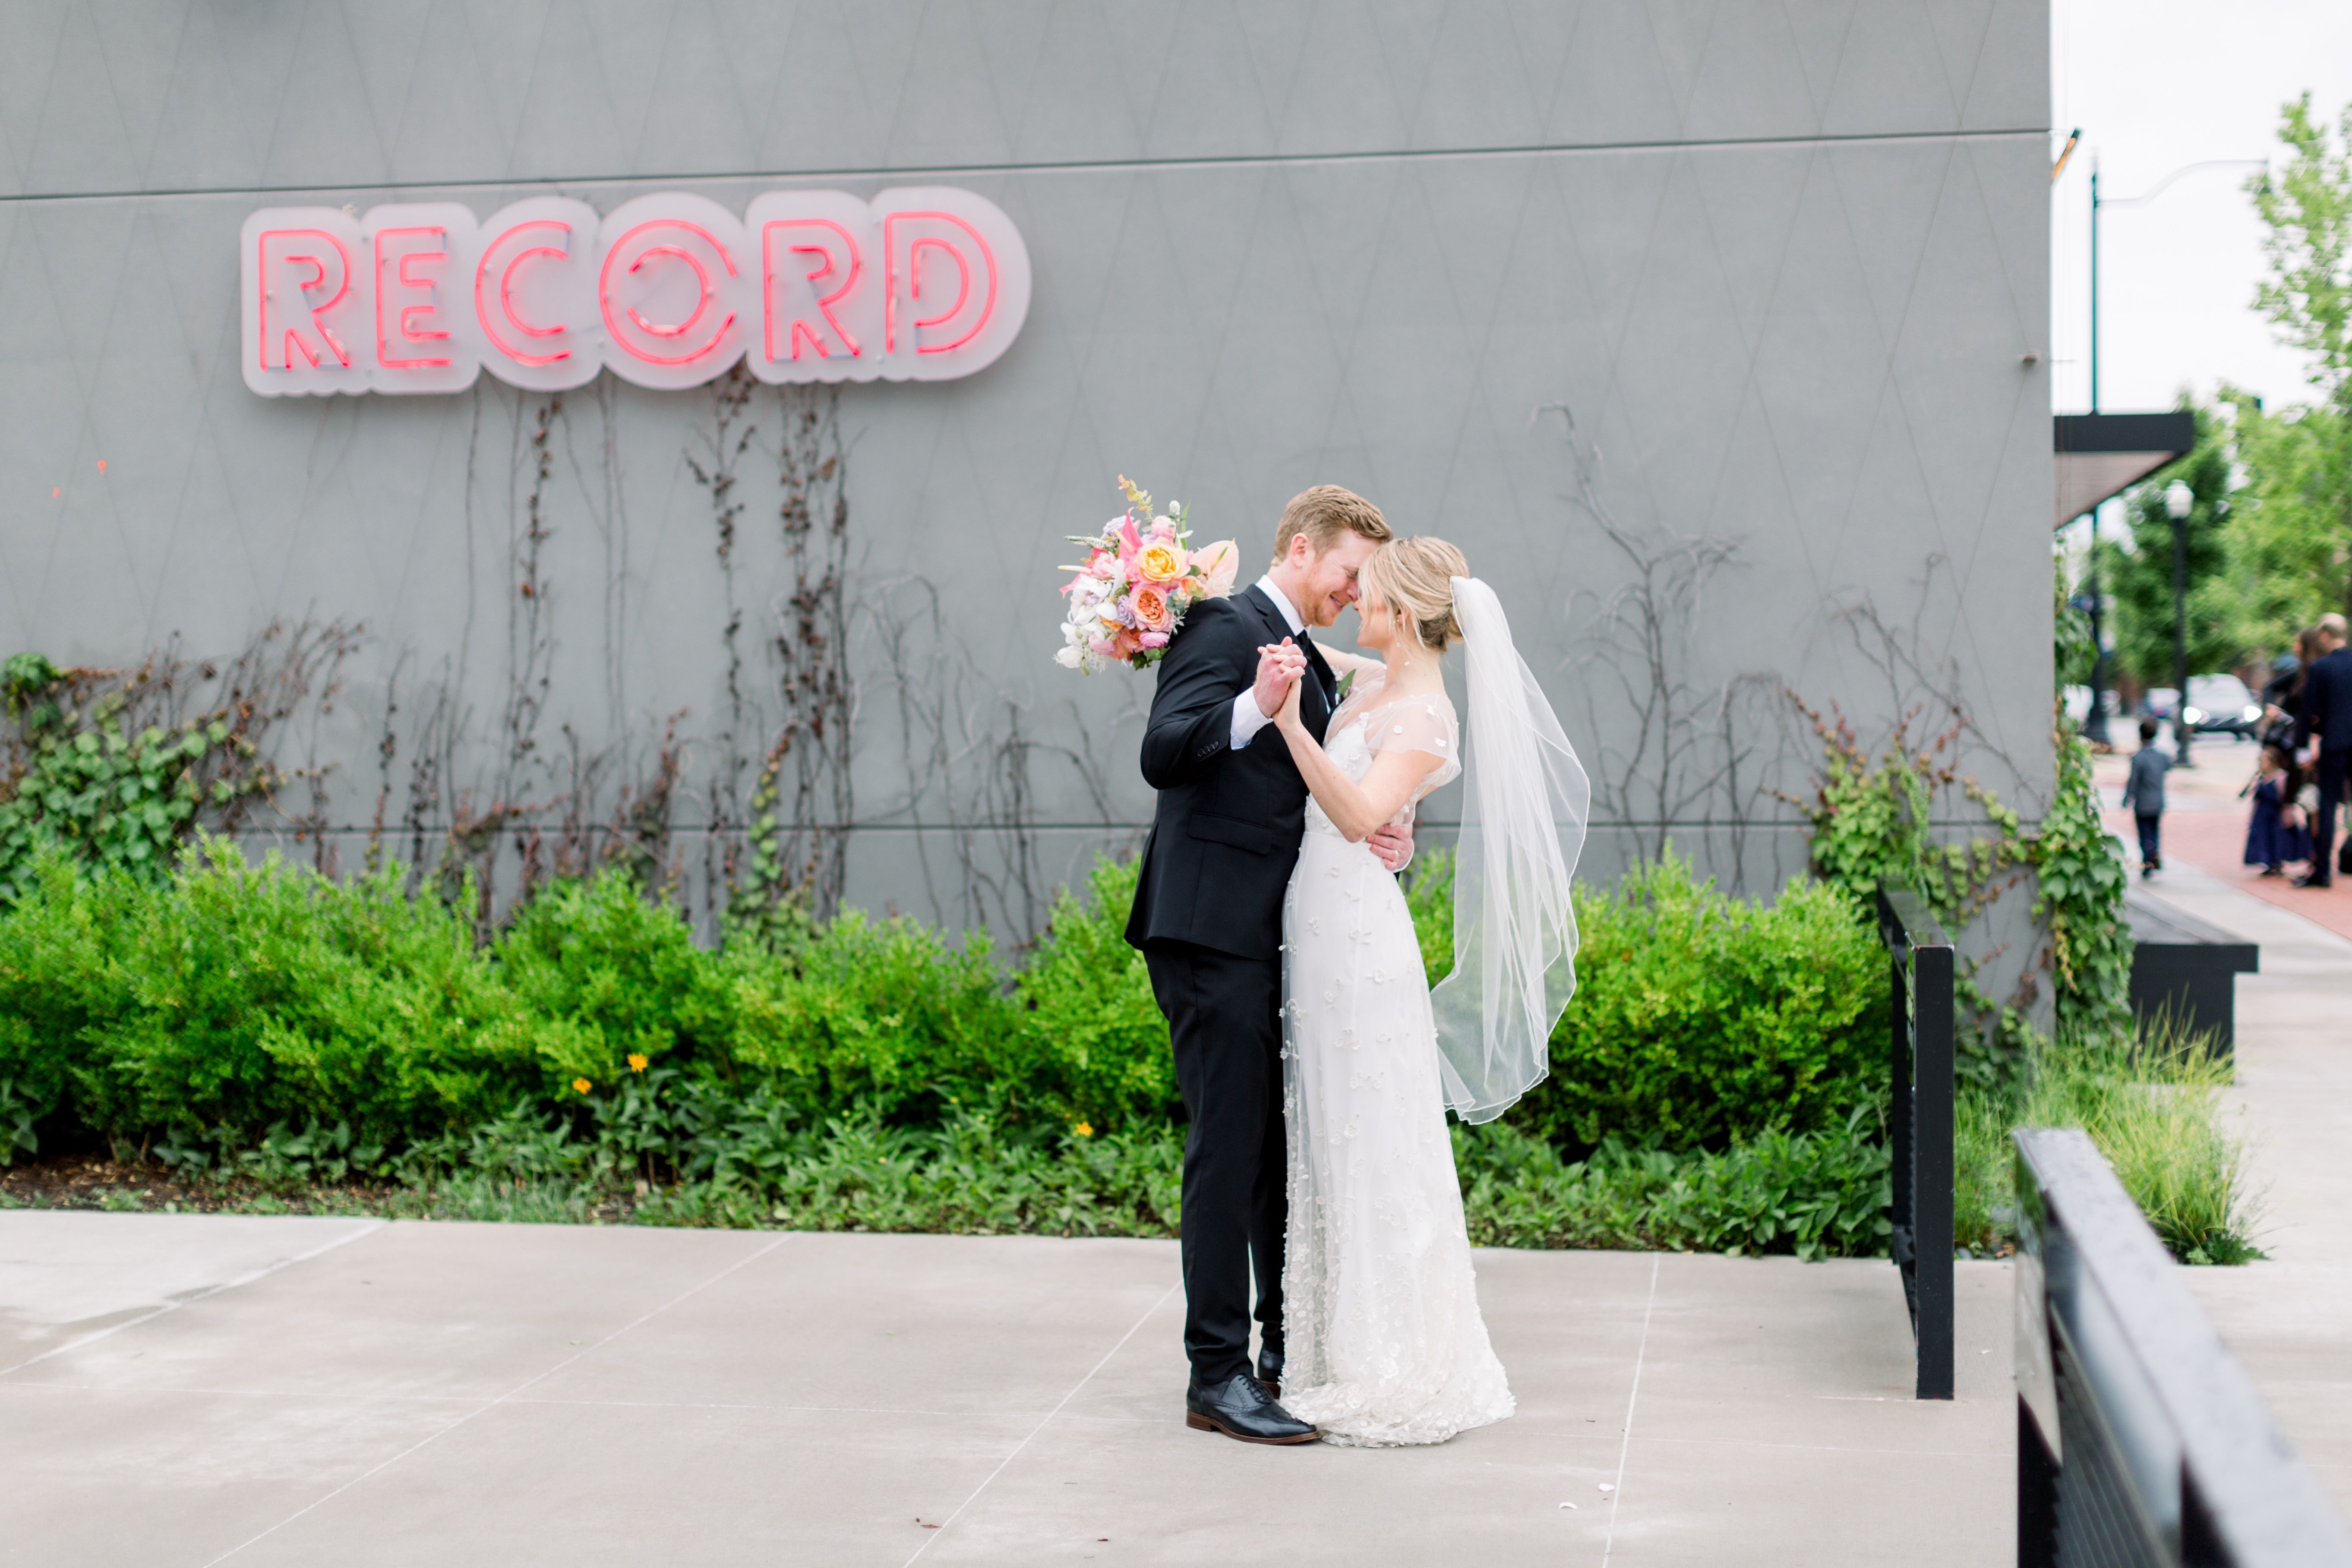 Bride and Groom in front of Record downtown Bentonville by Emma Farr Photography